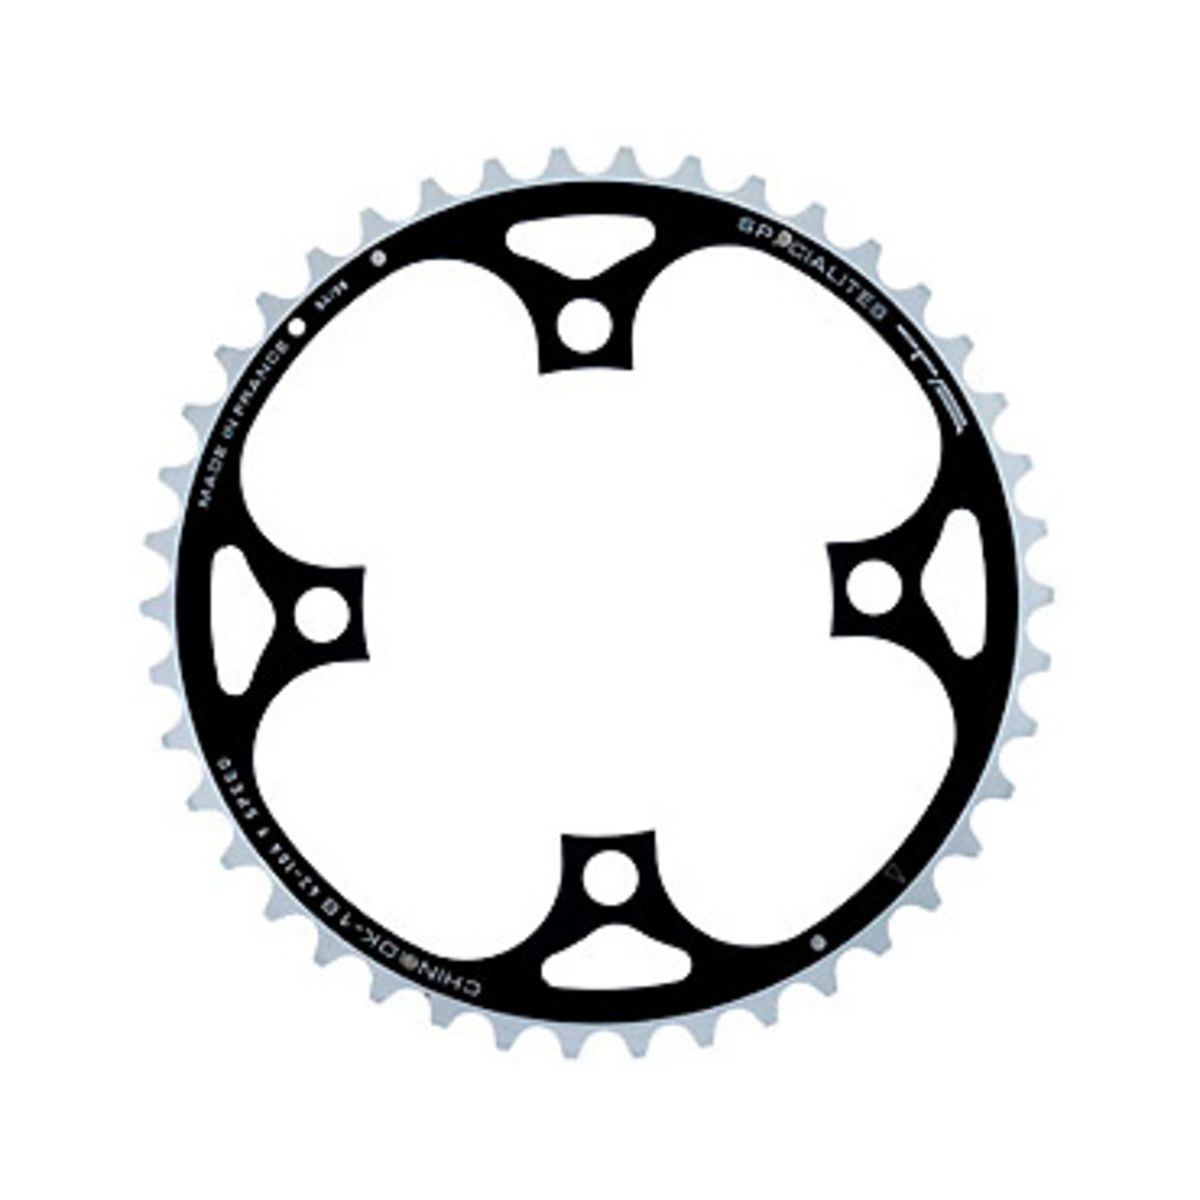 Chinook 9-speed 42-tooth chainring